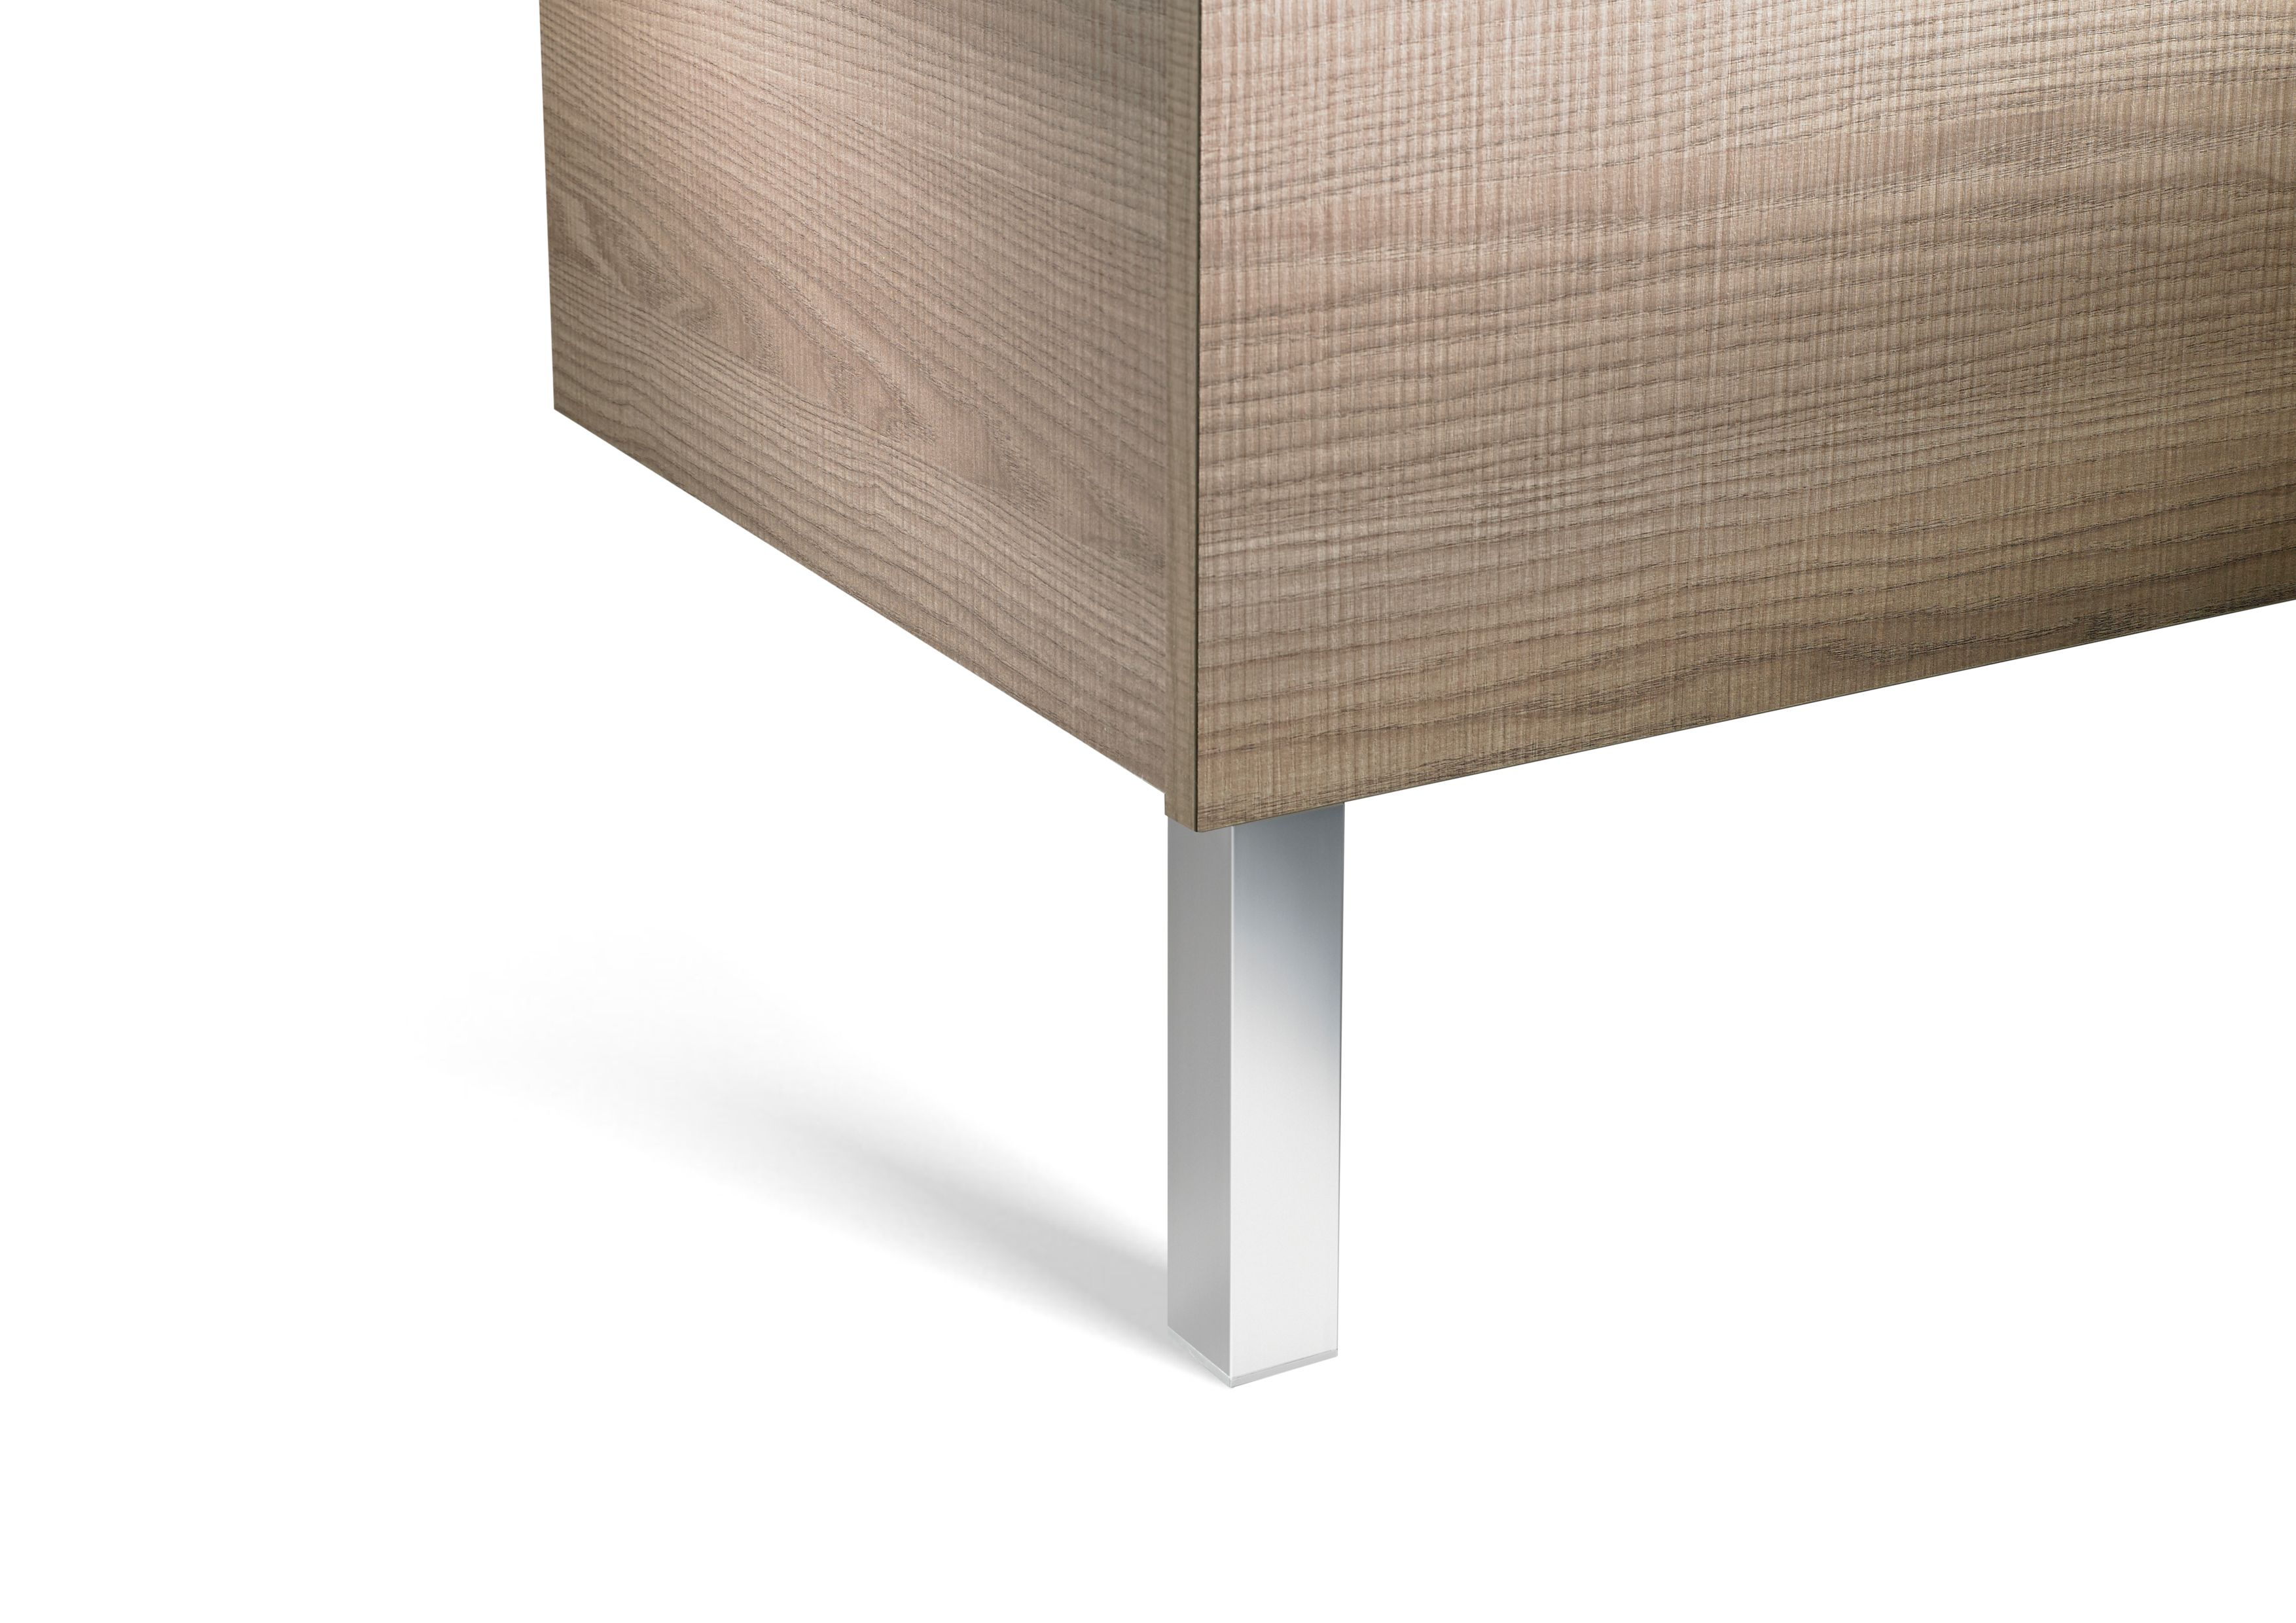 Furniture Plinths & Legs